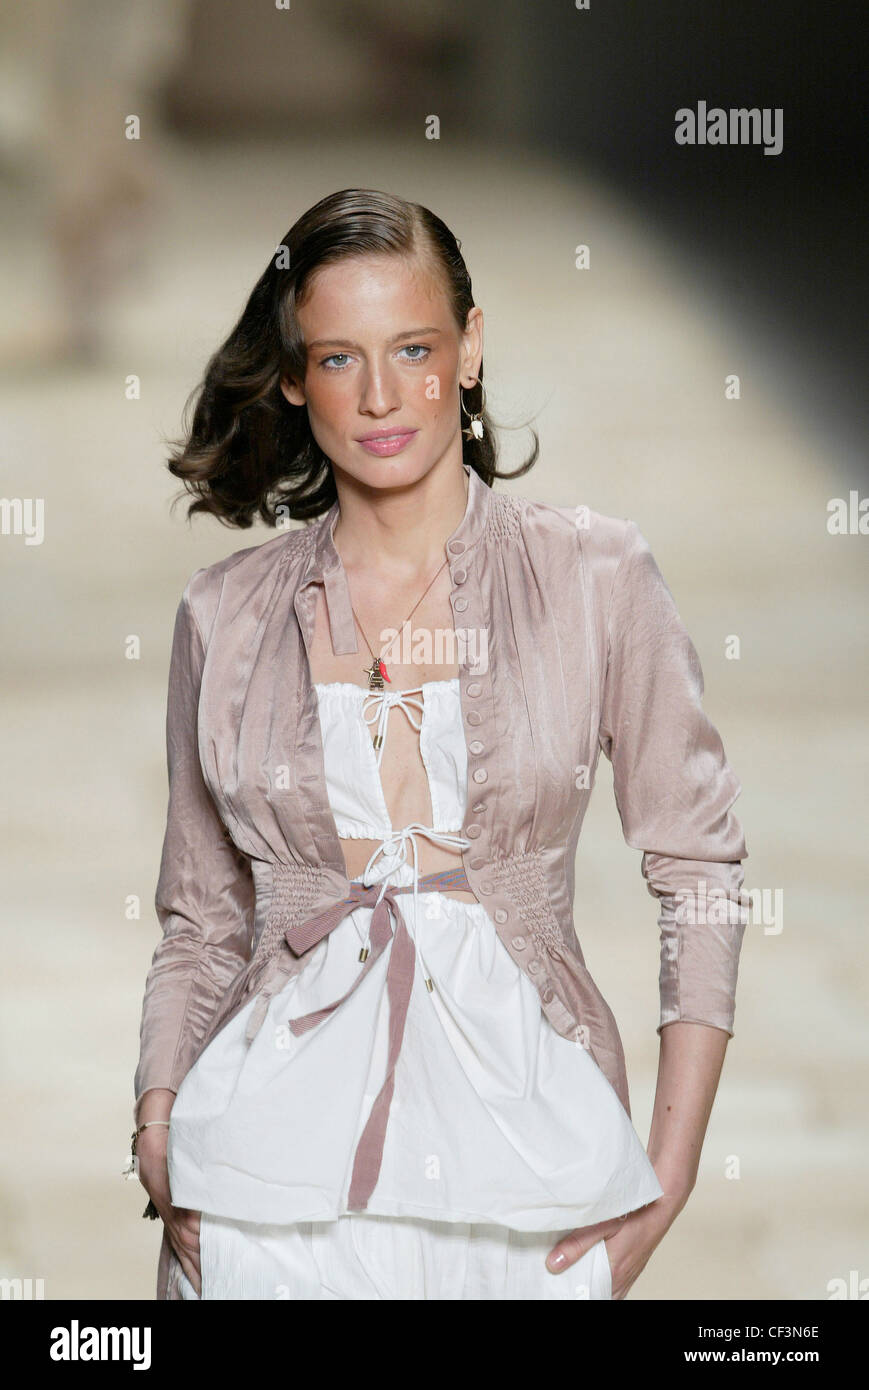 20fec4c0d7aa Givenchy Paris Ready to Wear Spring Summer Model shoulder length brunette  hair dangly earring and necklace